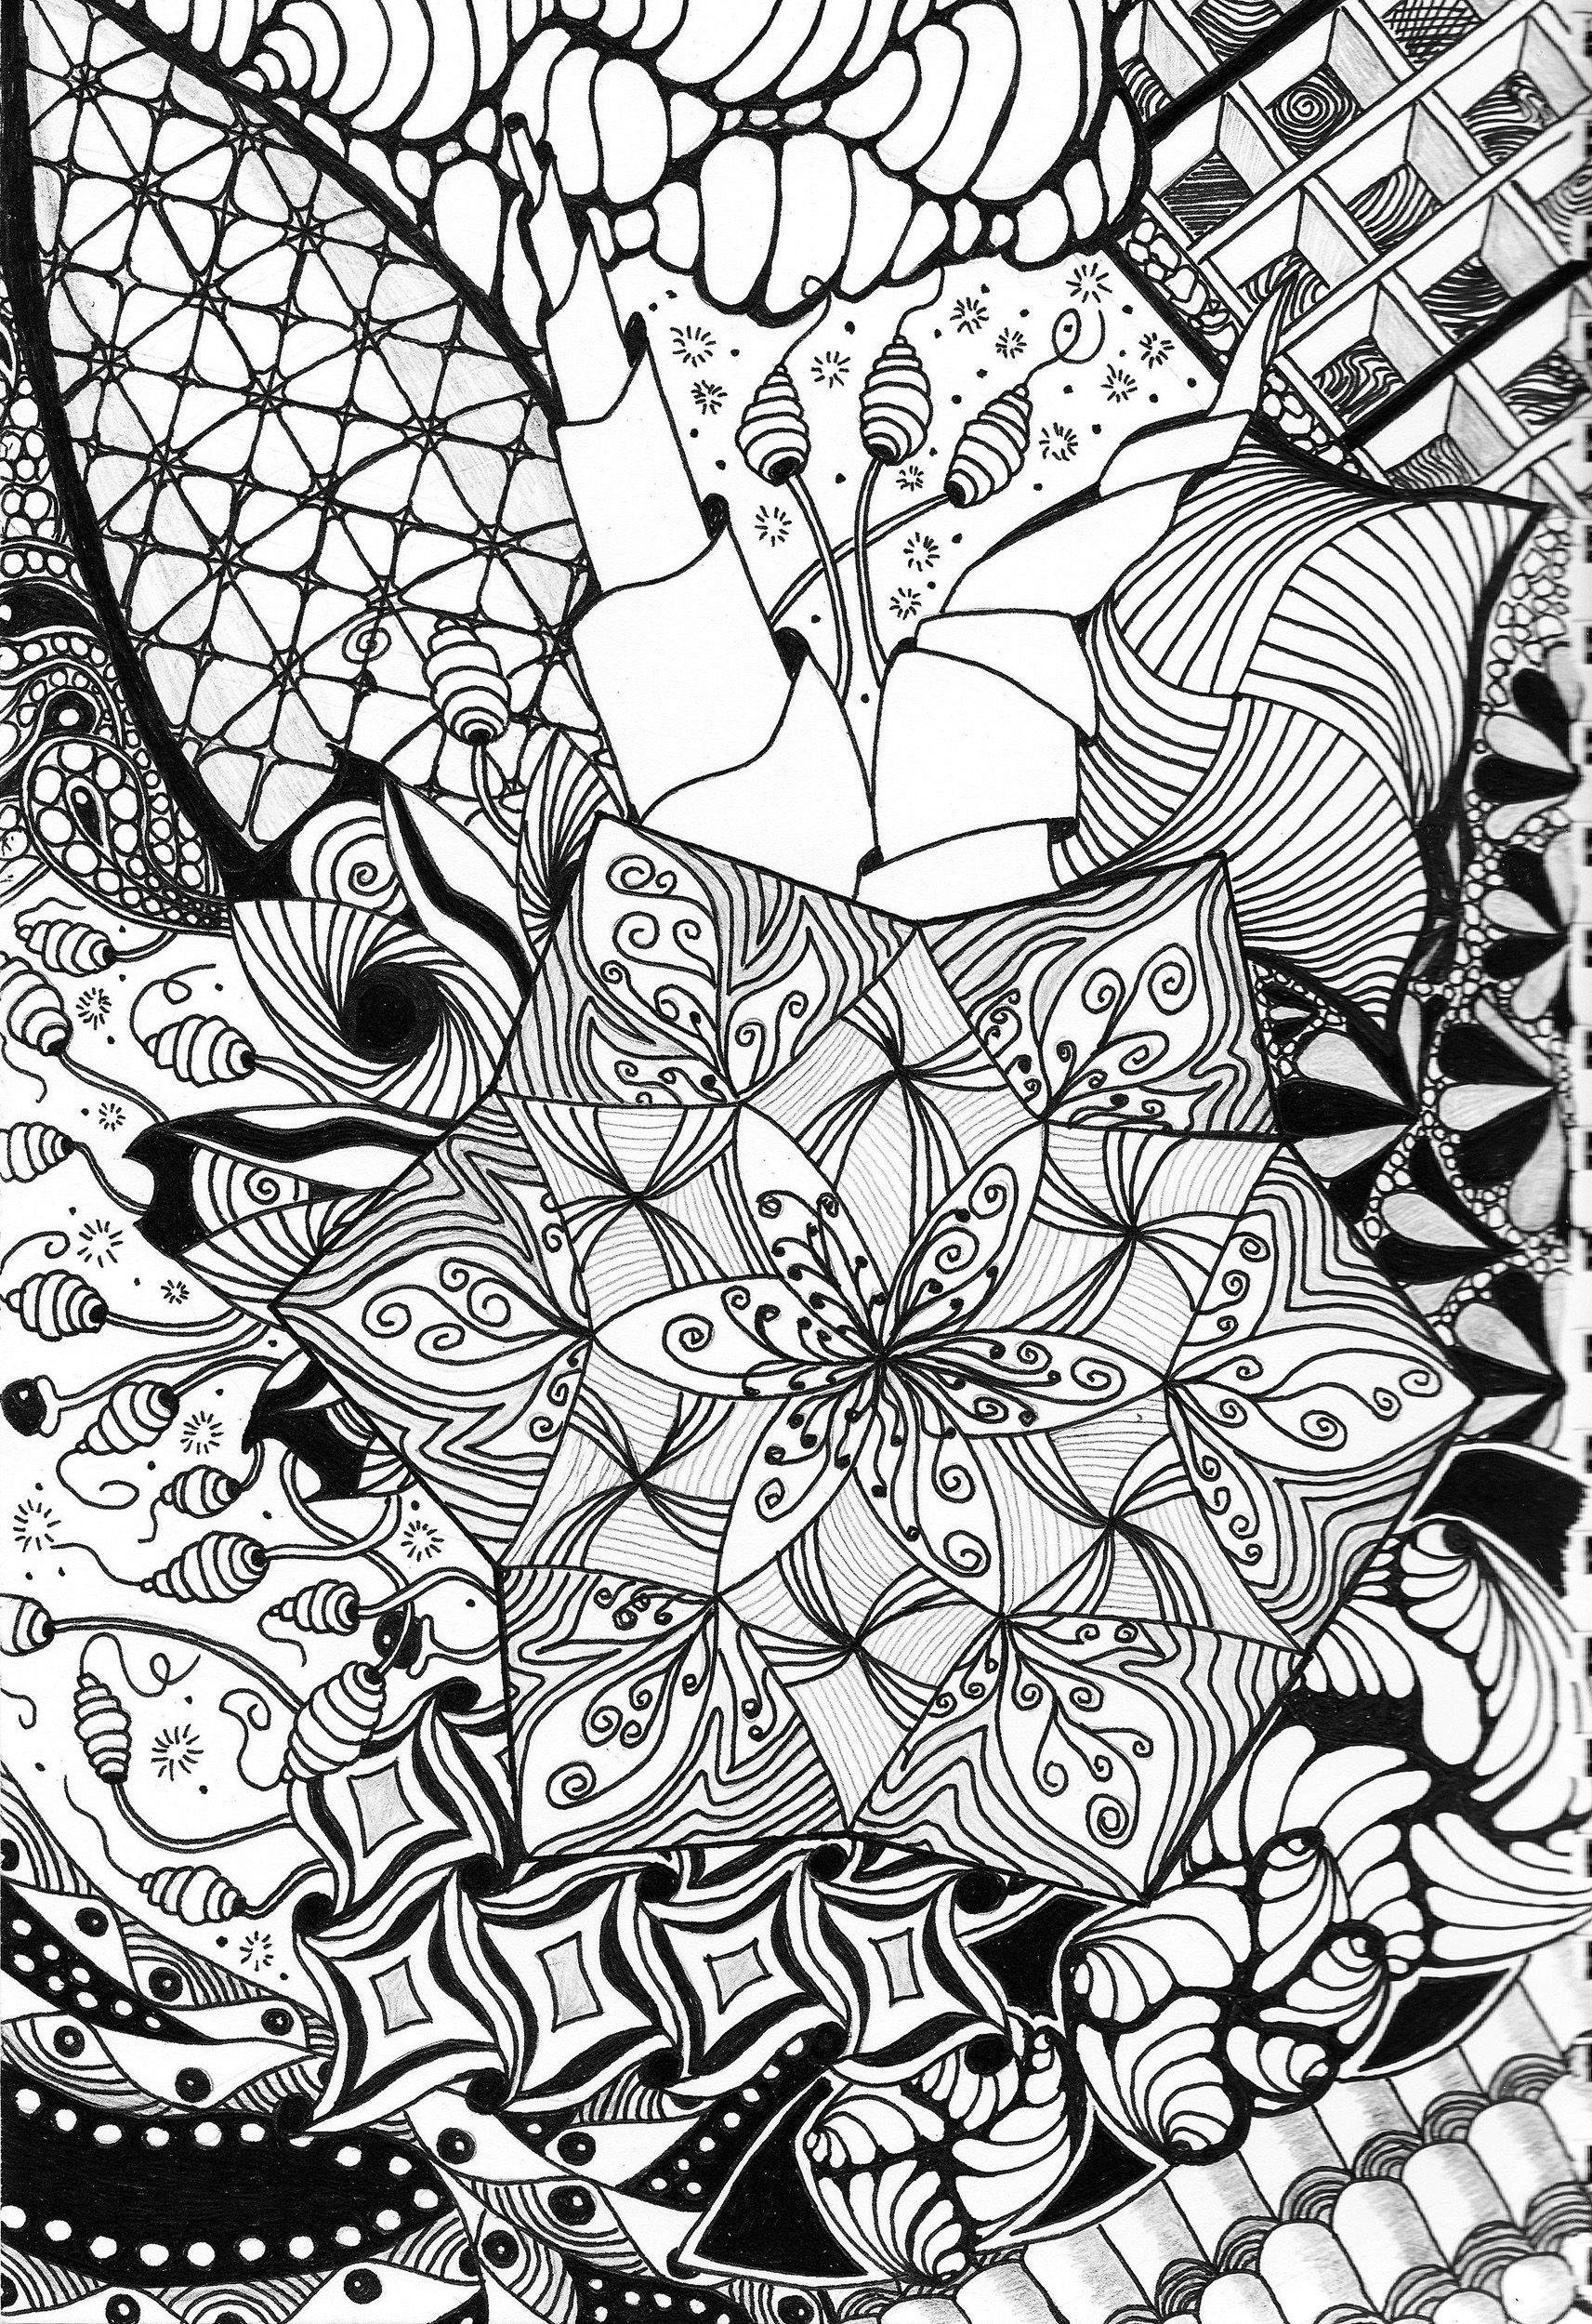 Zentangle made by myself.